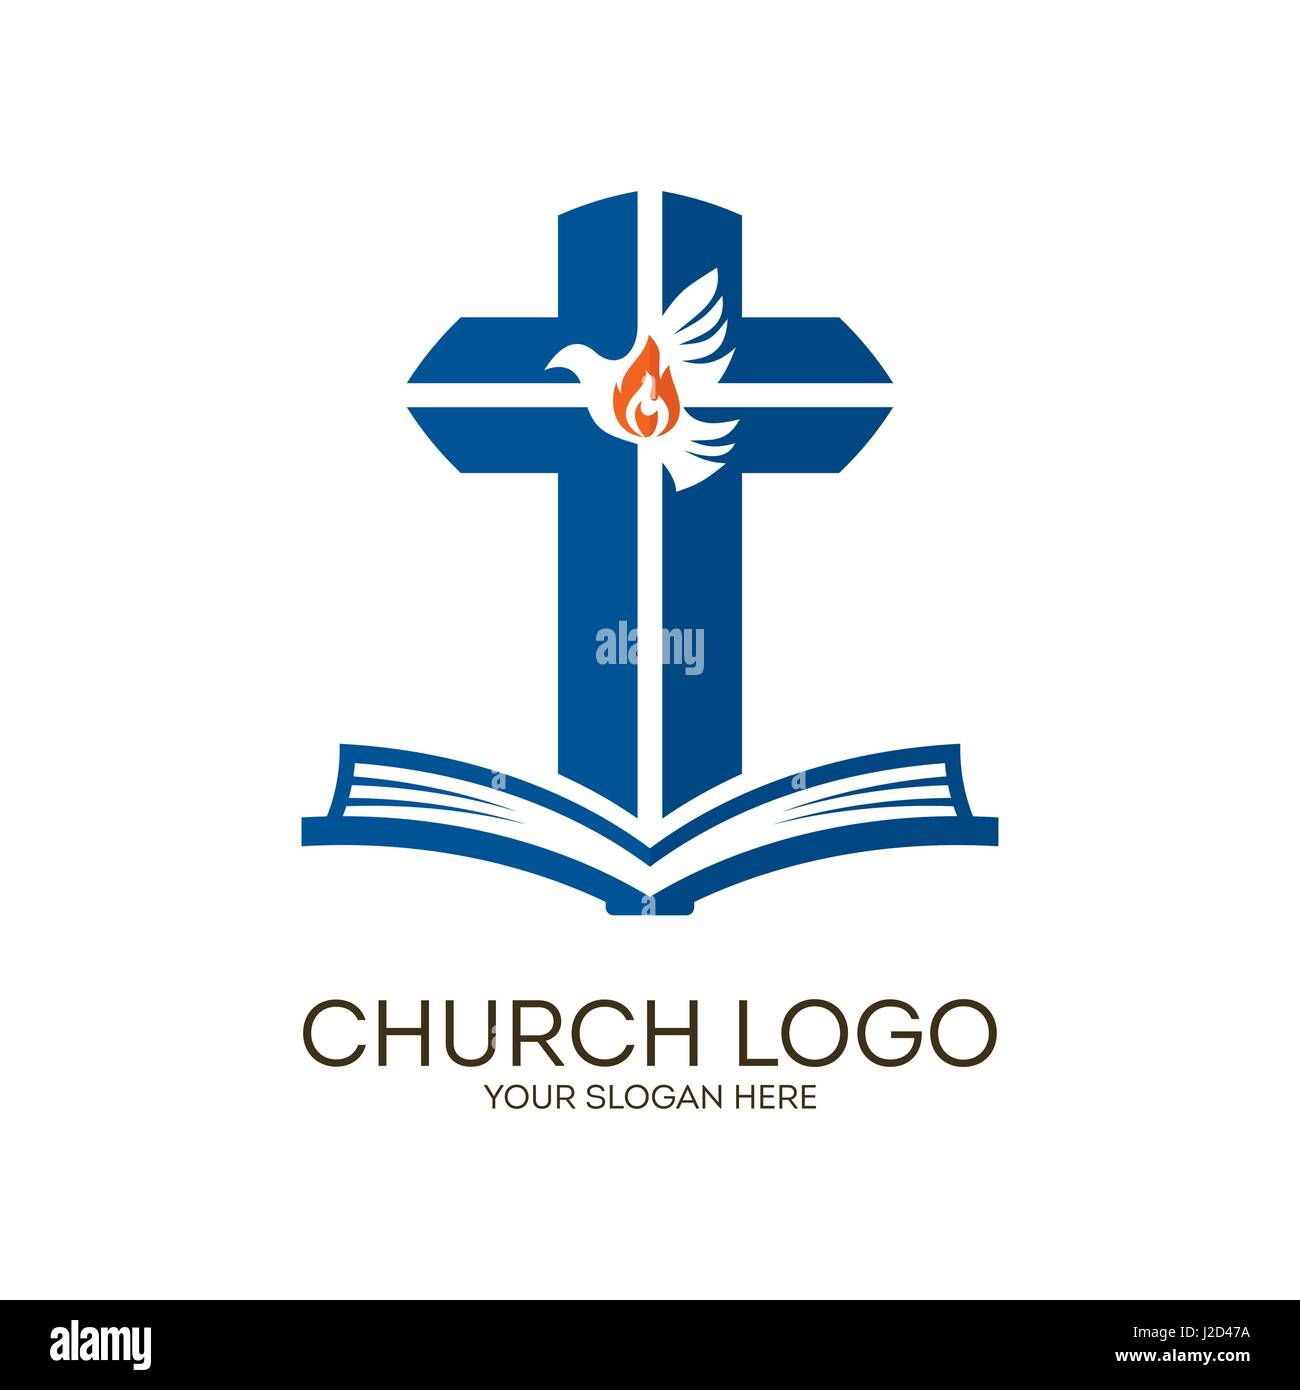 Church logo christian symbols bible cross and holy spirit dove church logo christian symbols bible cross and holy spirit dove altavistaventures Choice Image